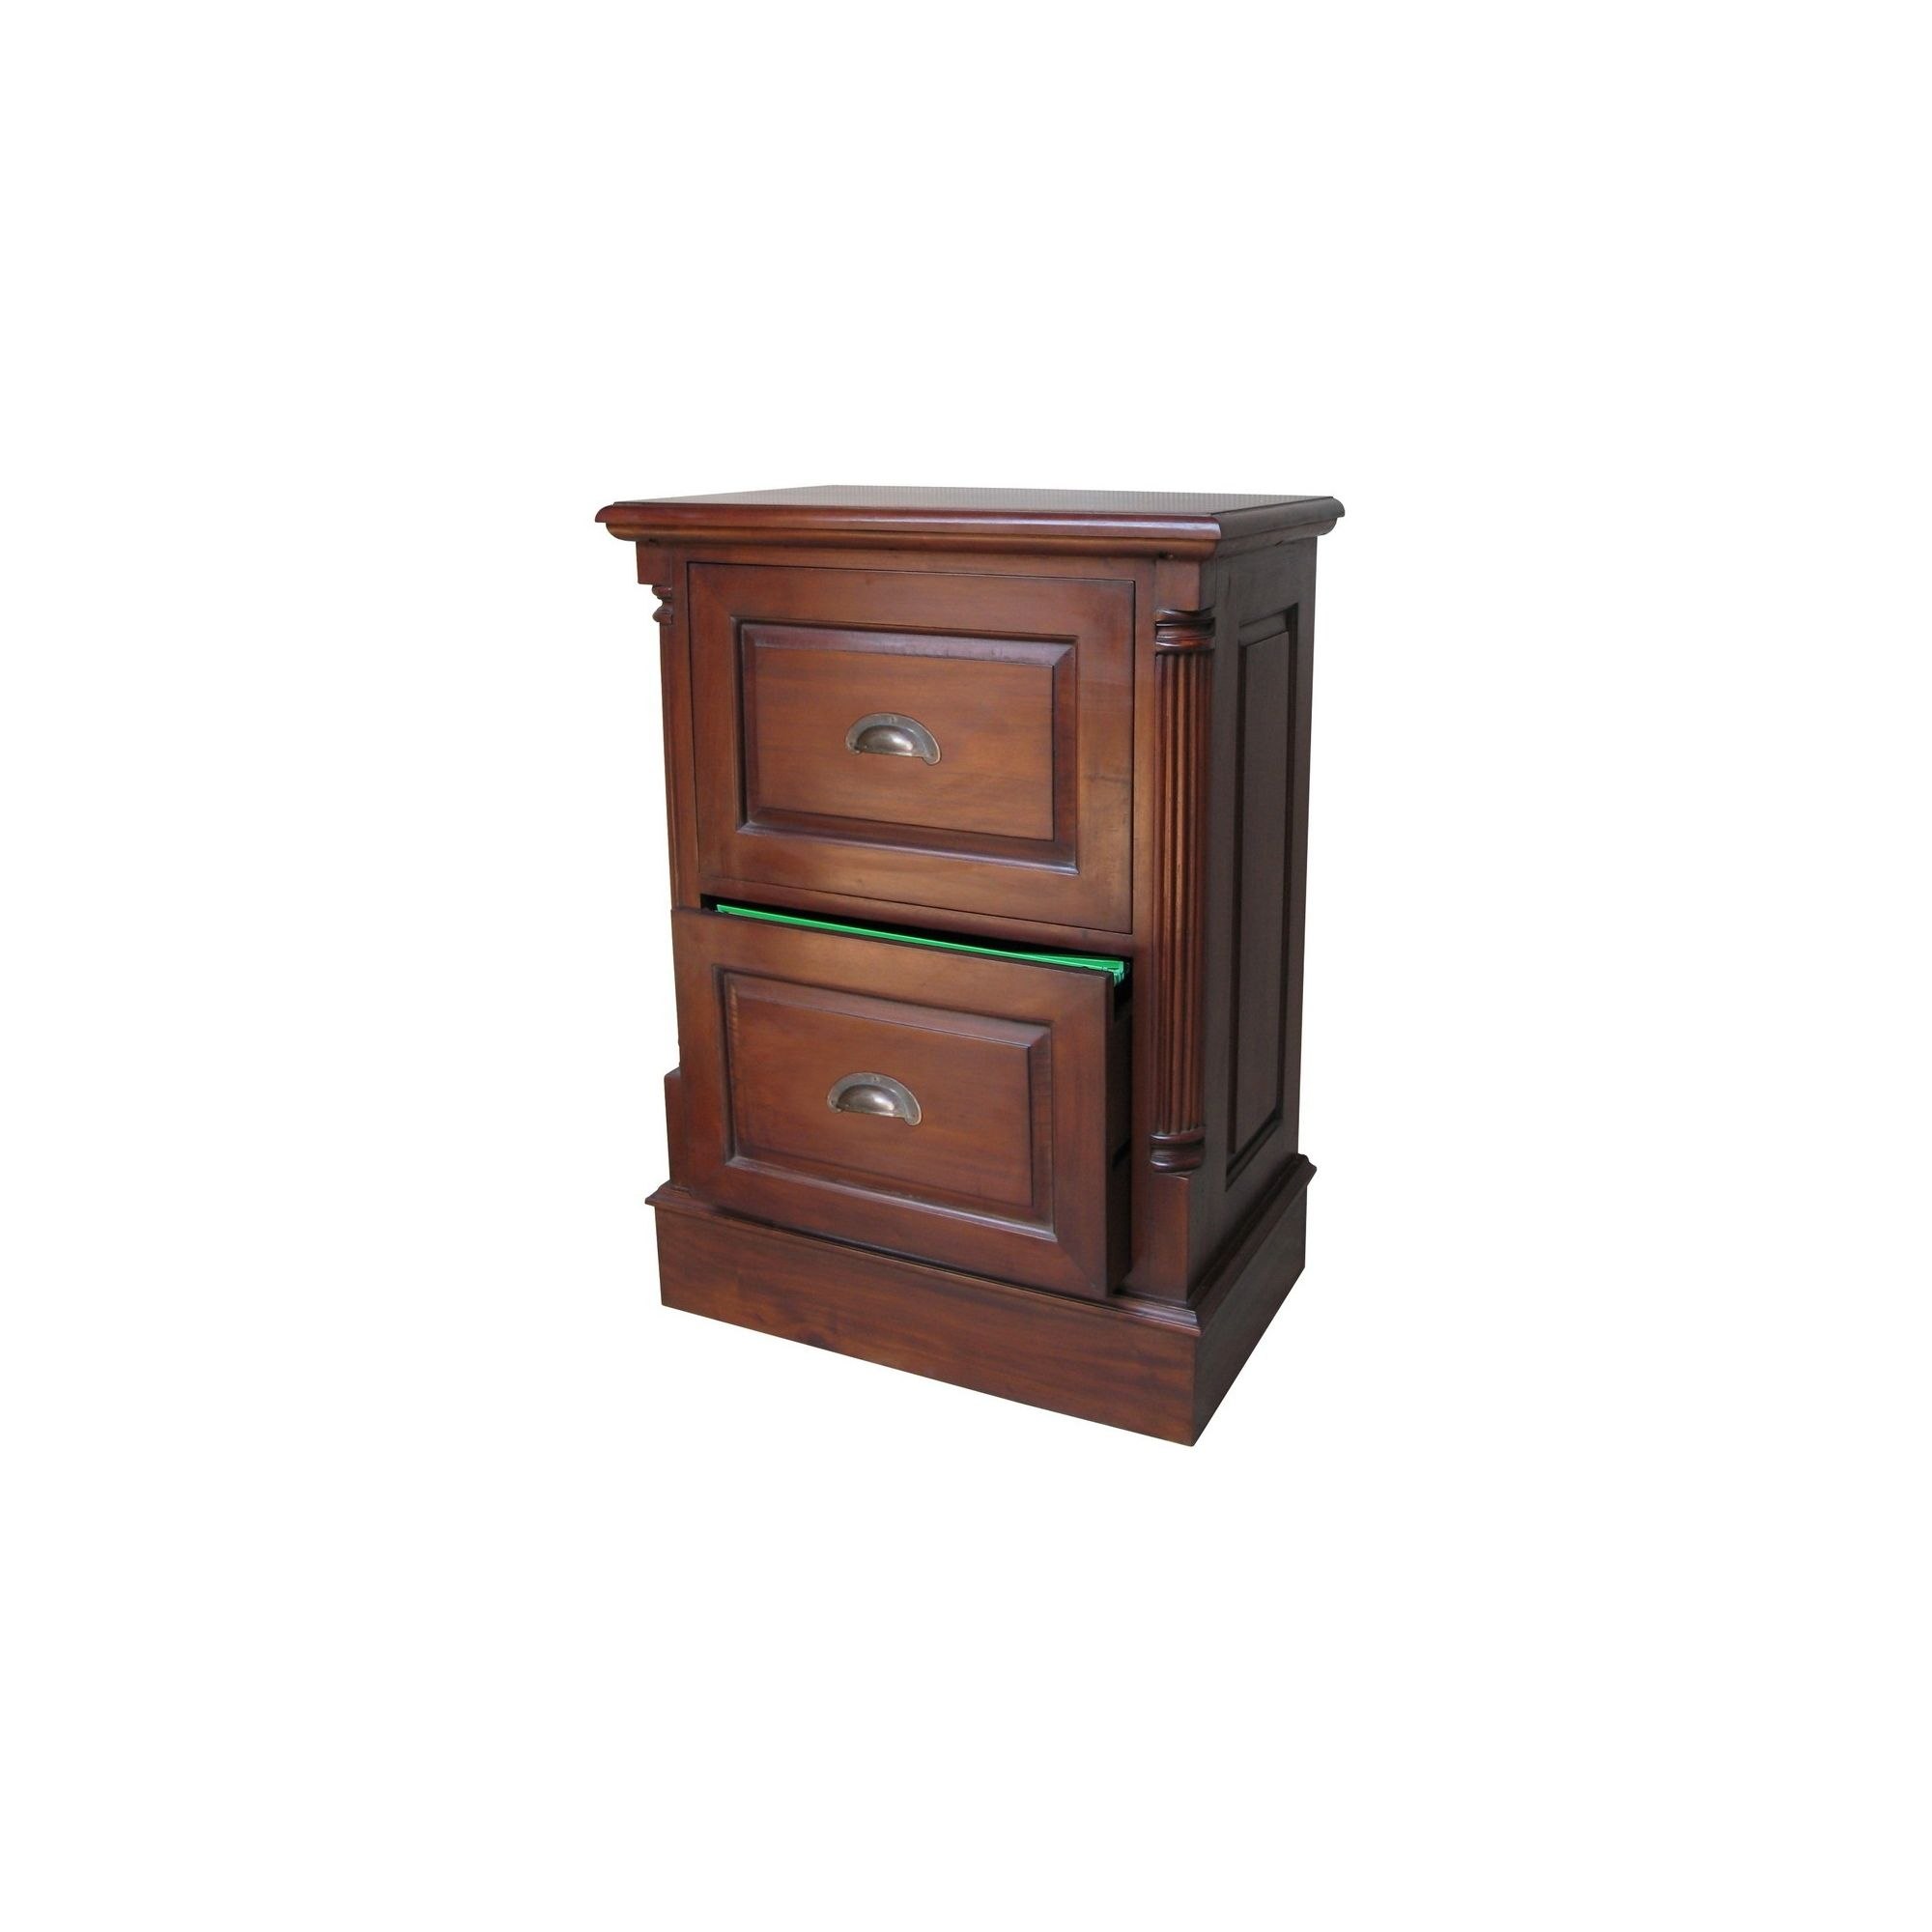 Lock stock and barrel Mahogany 2 Drawer Filing Cabinet with Antique Handles in Mahogany at Tescos Direct